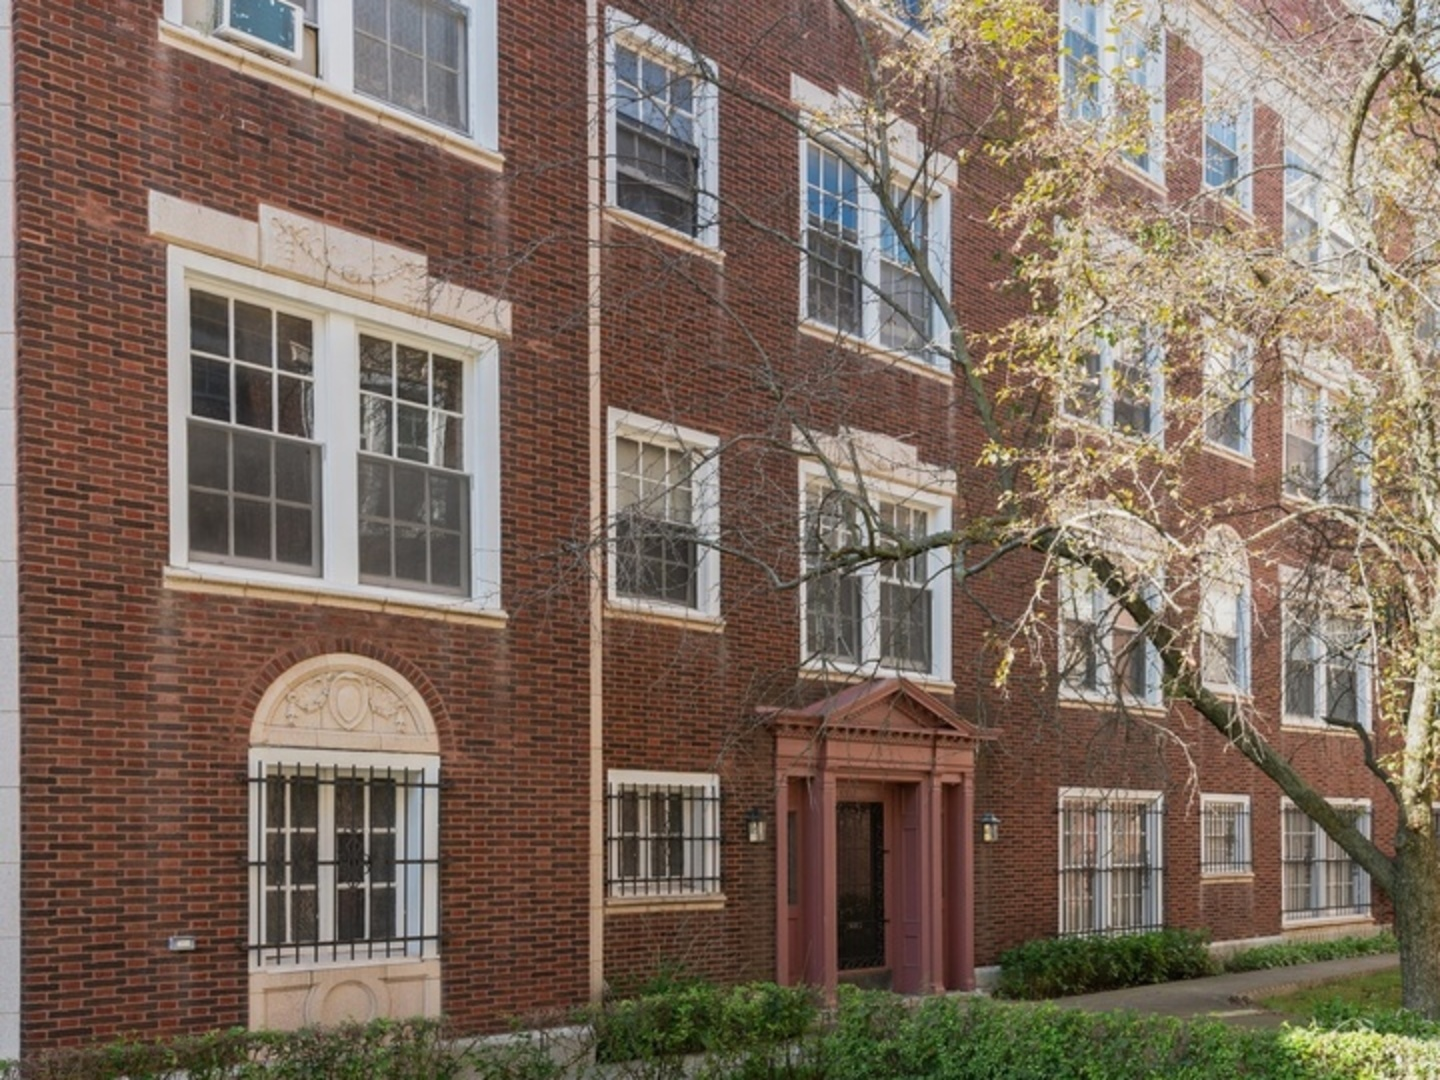 4916 Drexel Unit Unit 1w ,Chicago, Illinois 60615